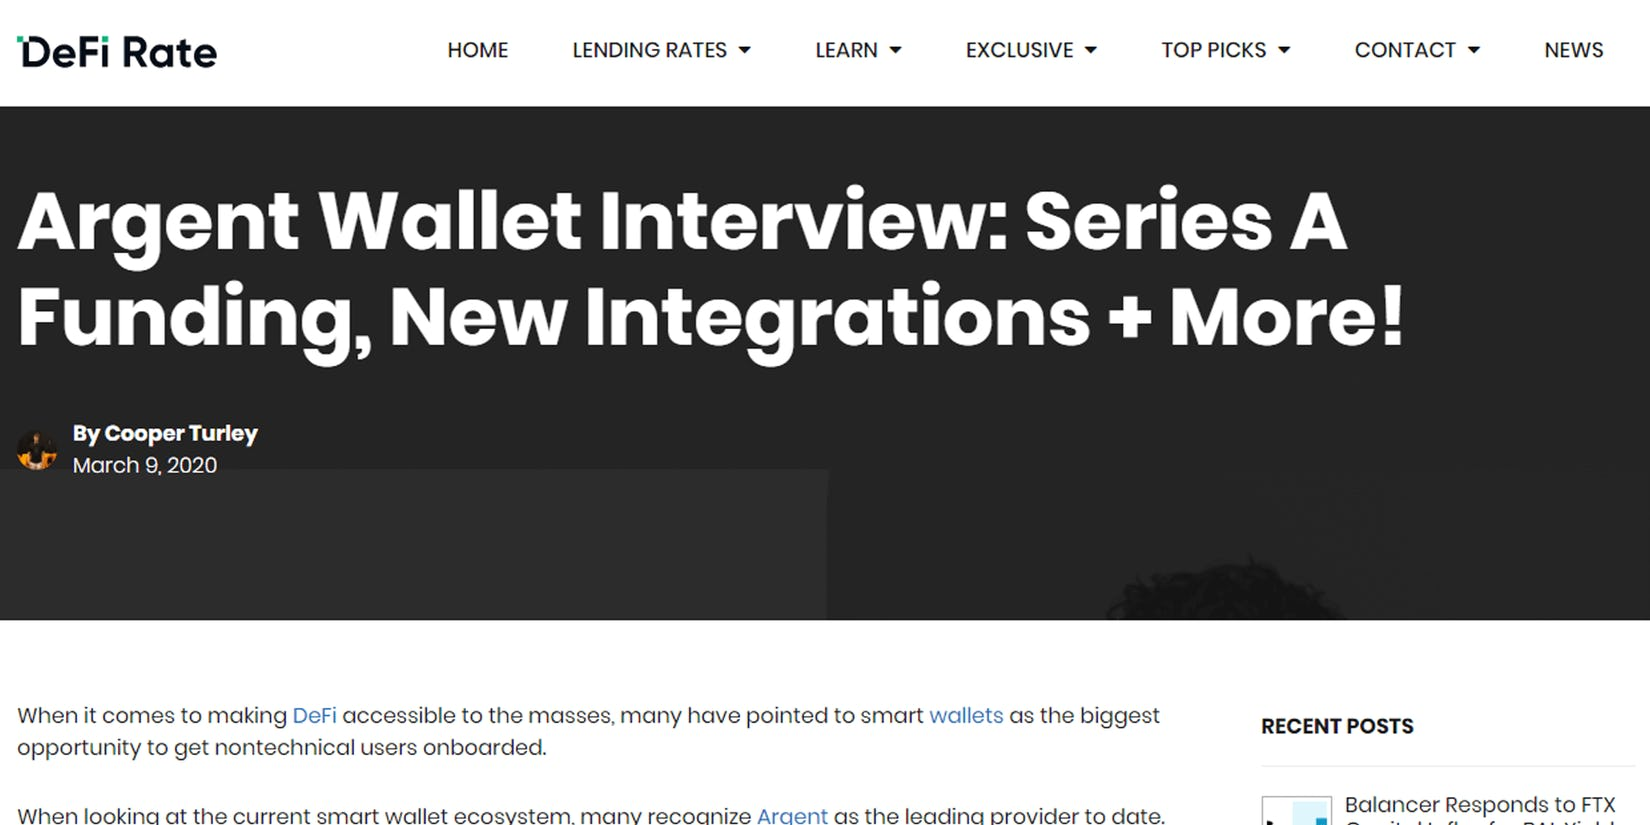 DeFi Rate: Argent Wallet Interview - Series A Funding, New Integrations + More!